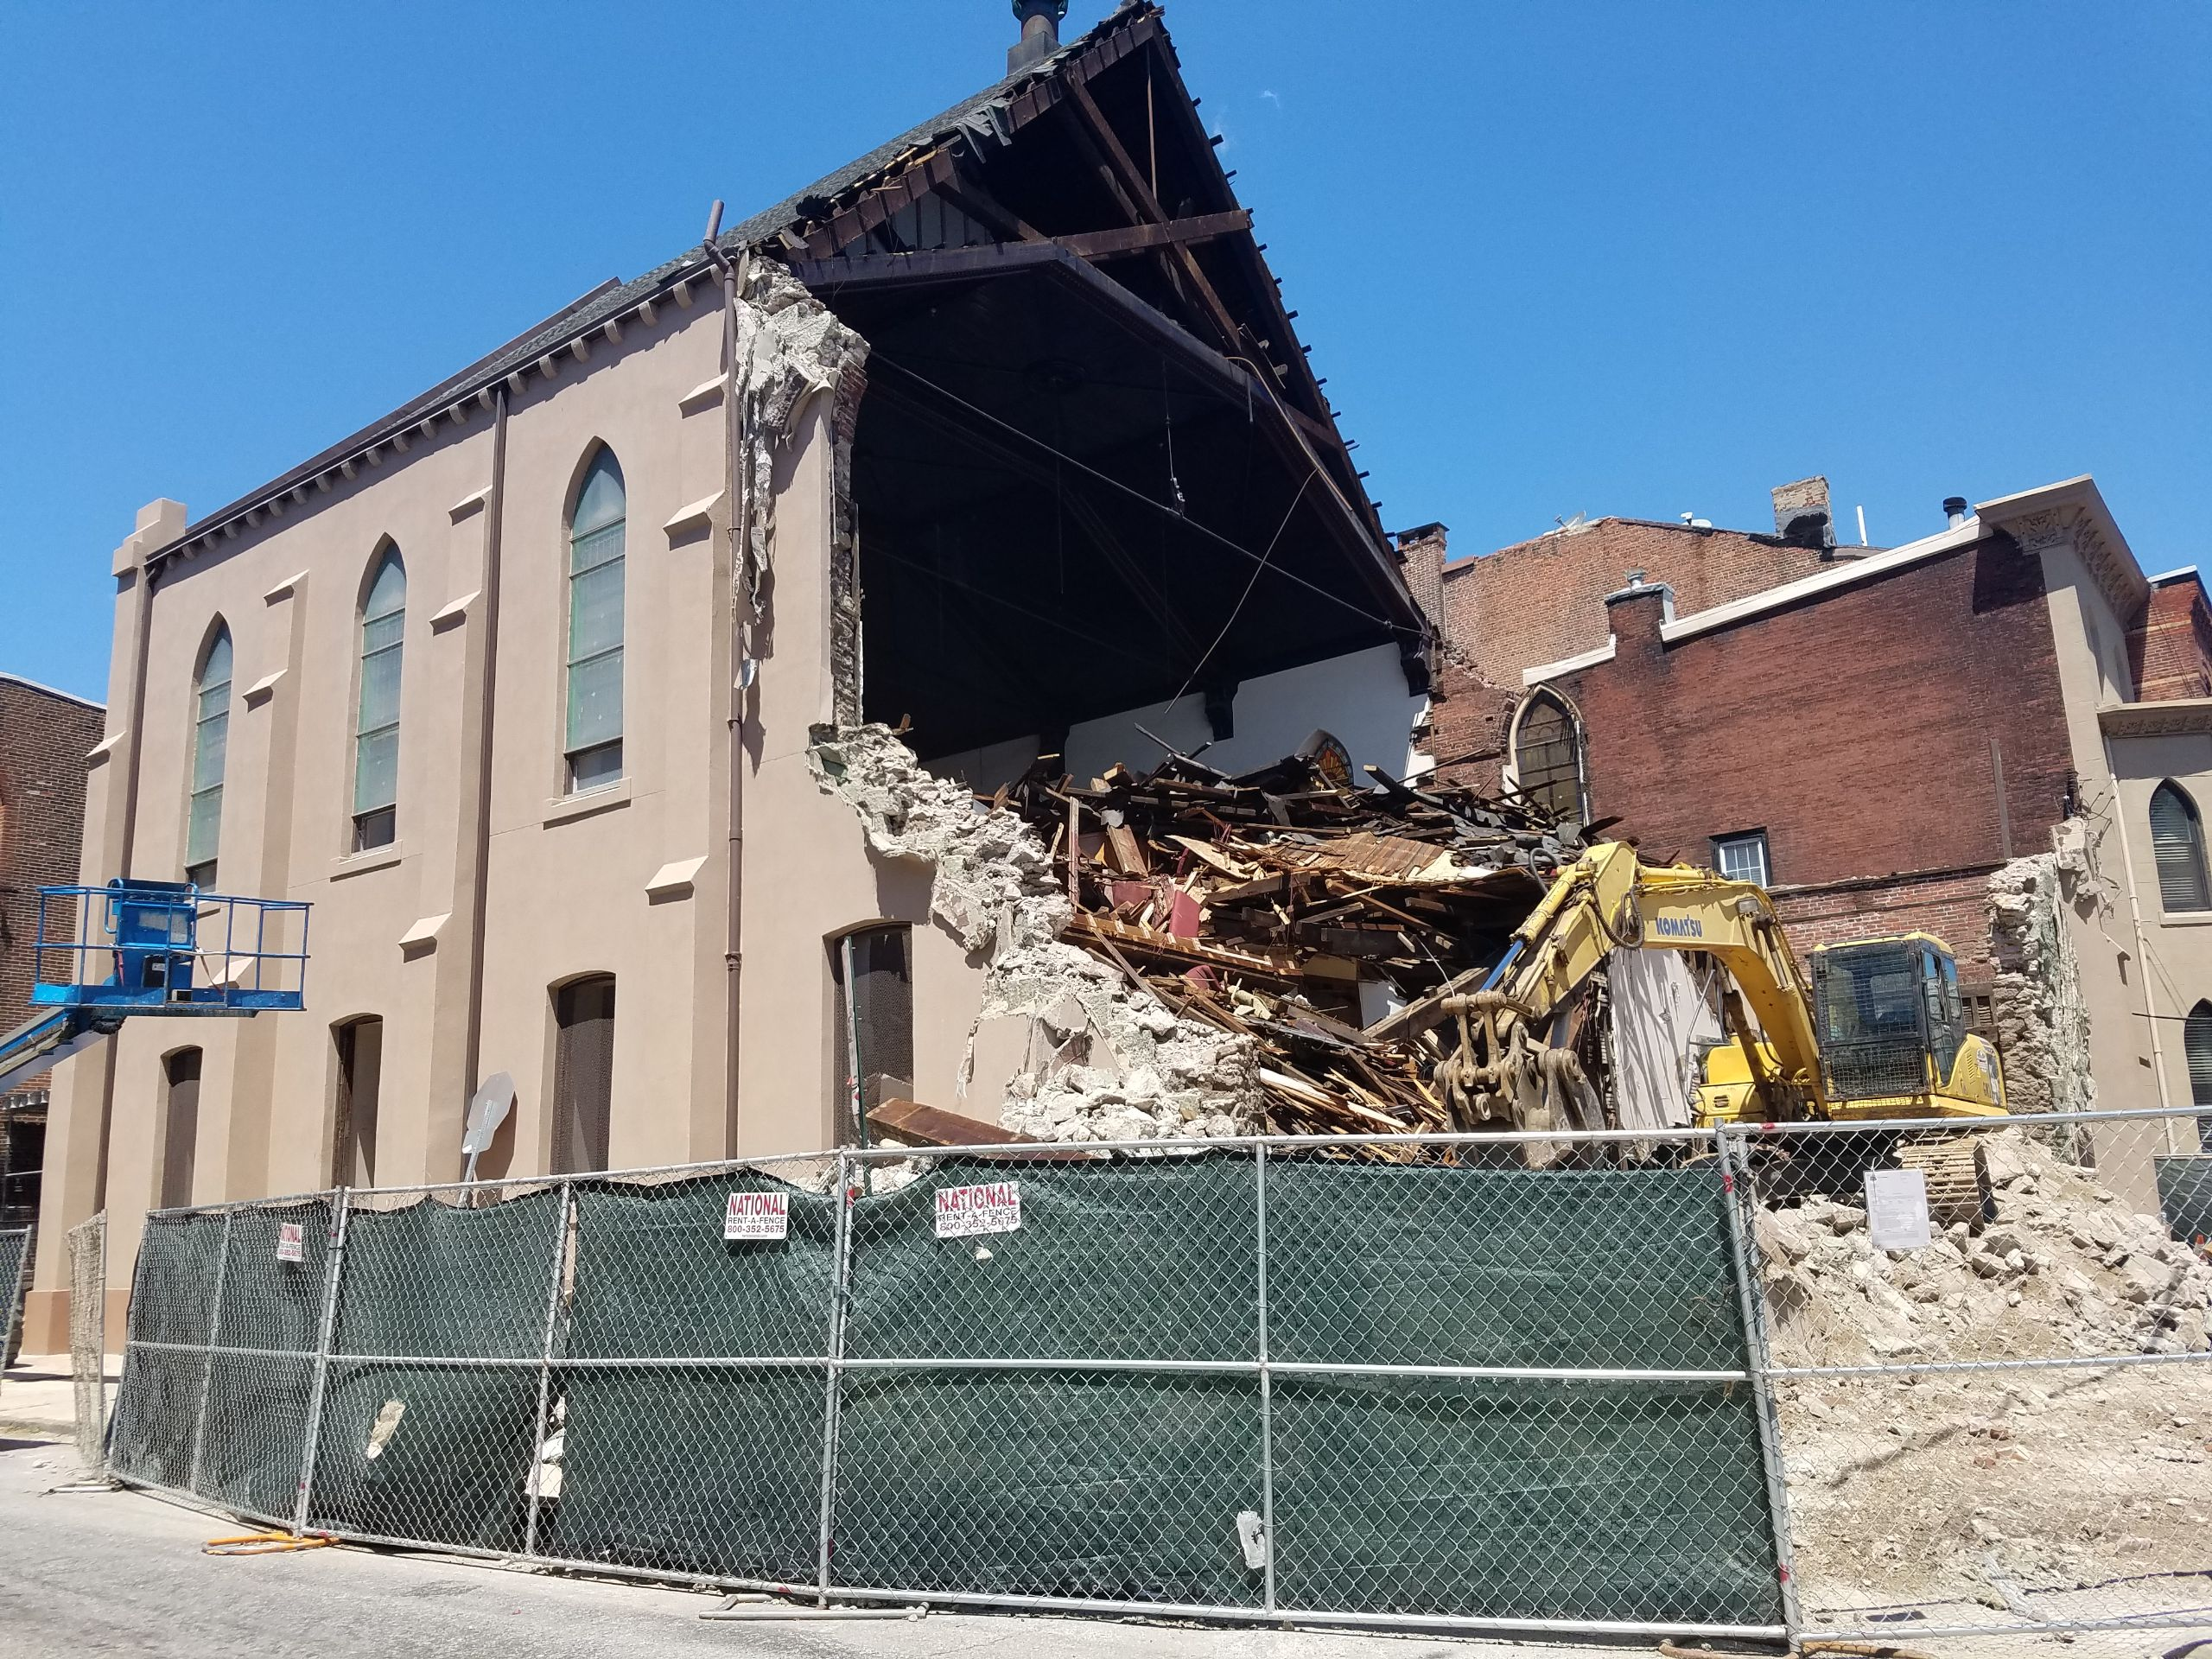 Demolition of New Light Beulah Baptist Church at 17th and Bainbridge Streets in South Philadelphia.